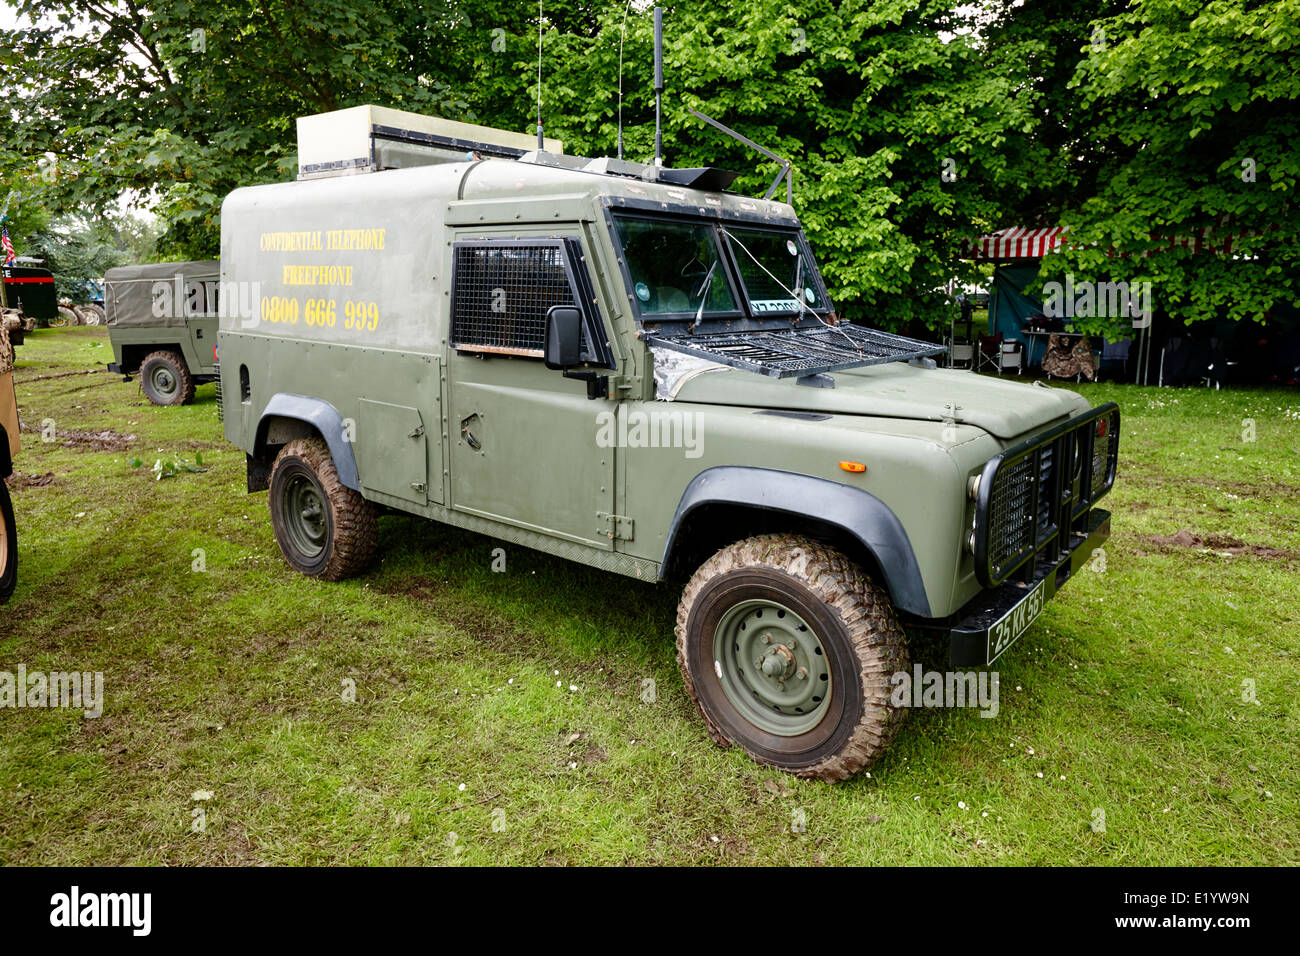 british army snatch landrover in northern ireland colour pattern at military vehicle display bangor northern ireland - Stock Image